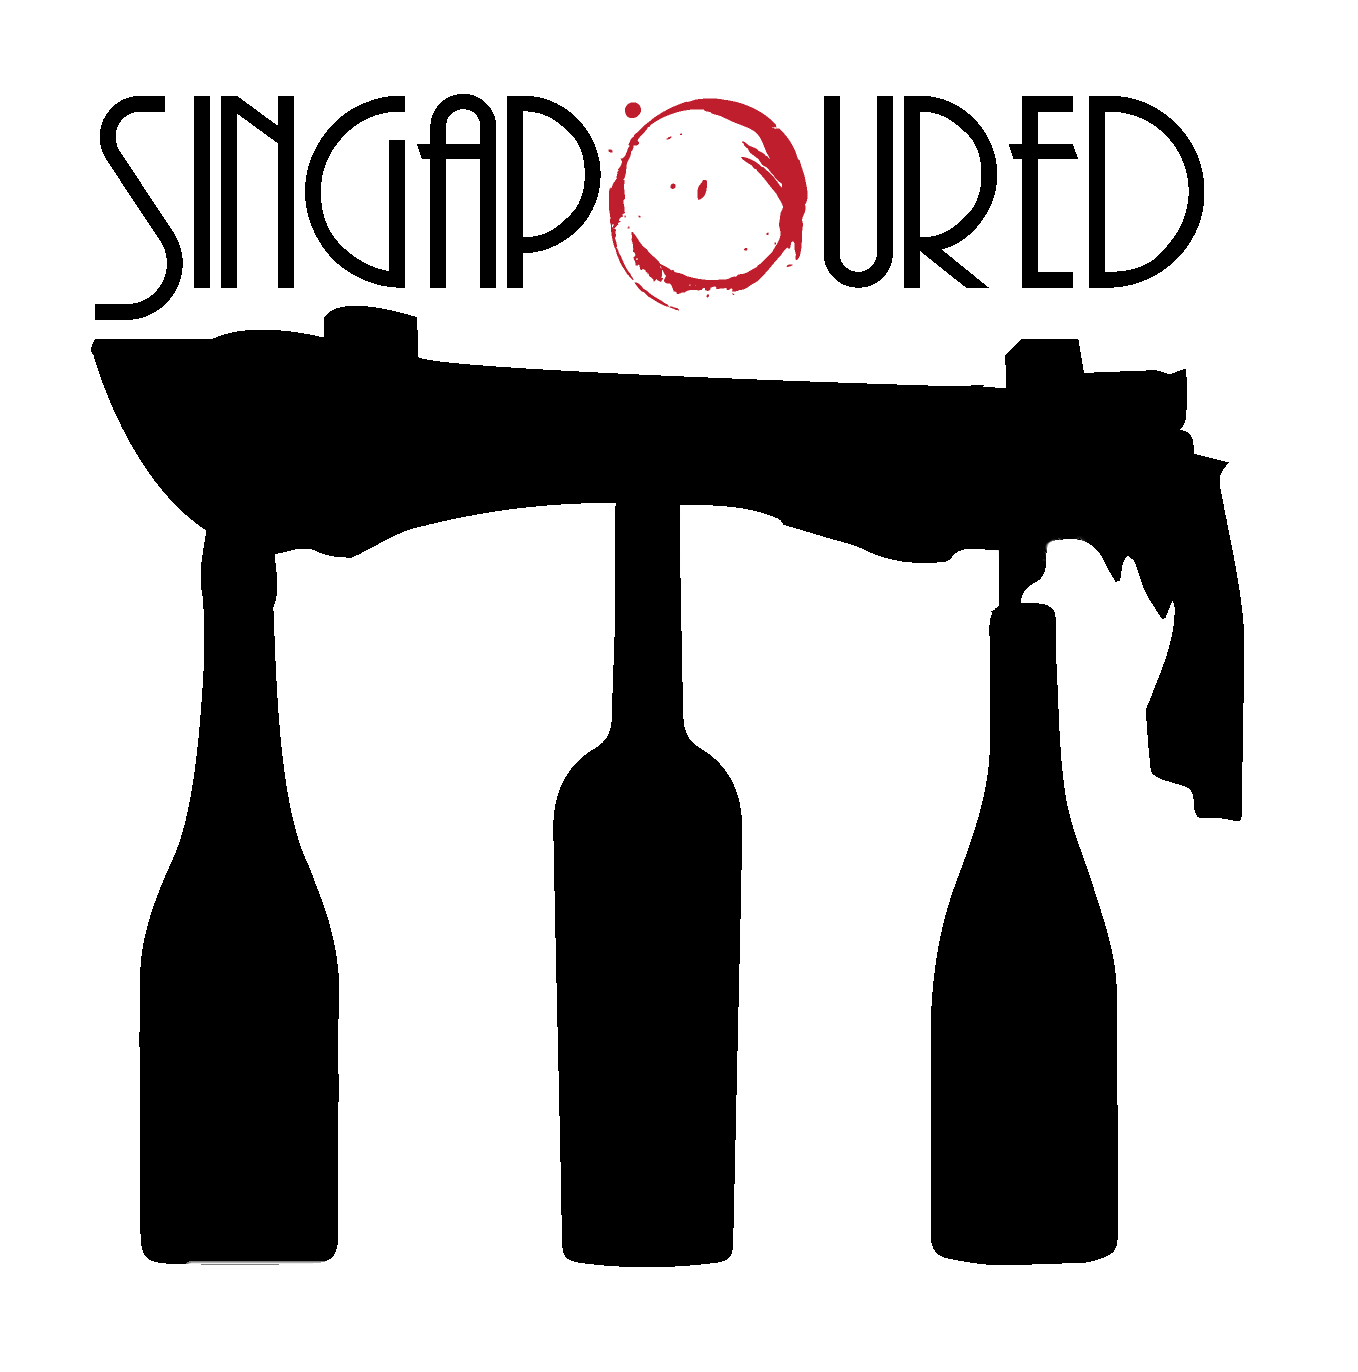 Singapoured-NOshadow-hires